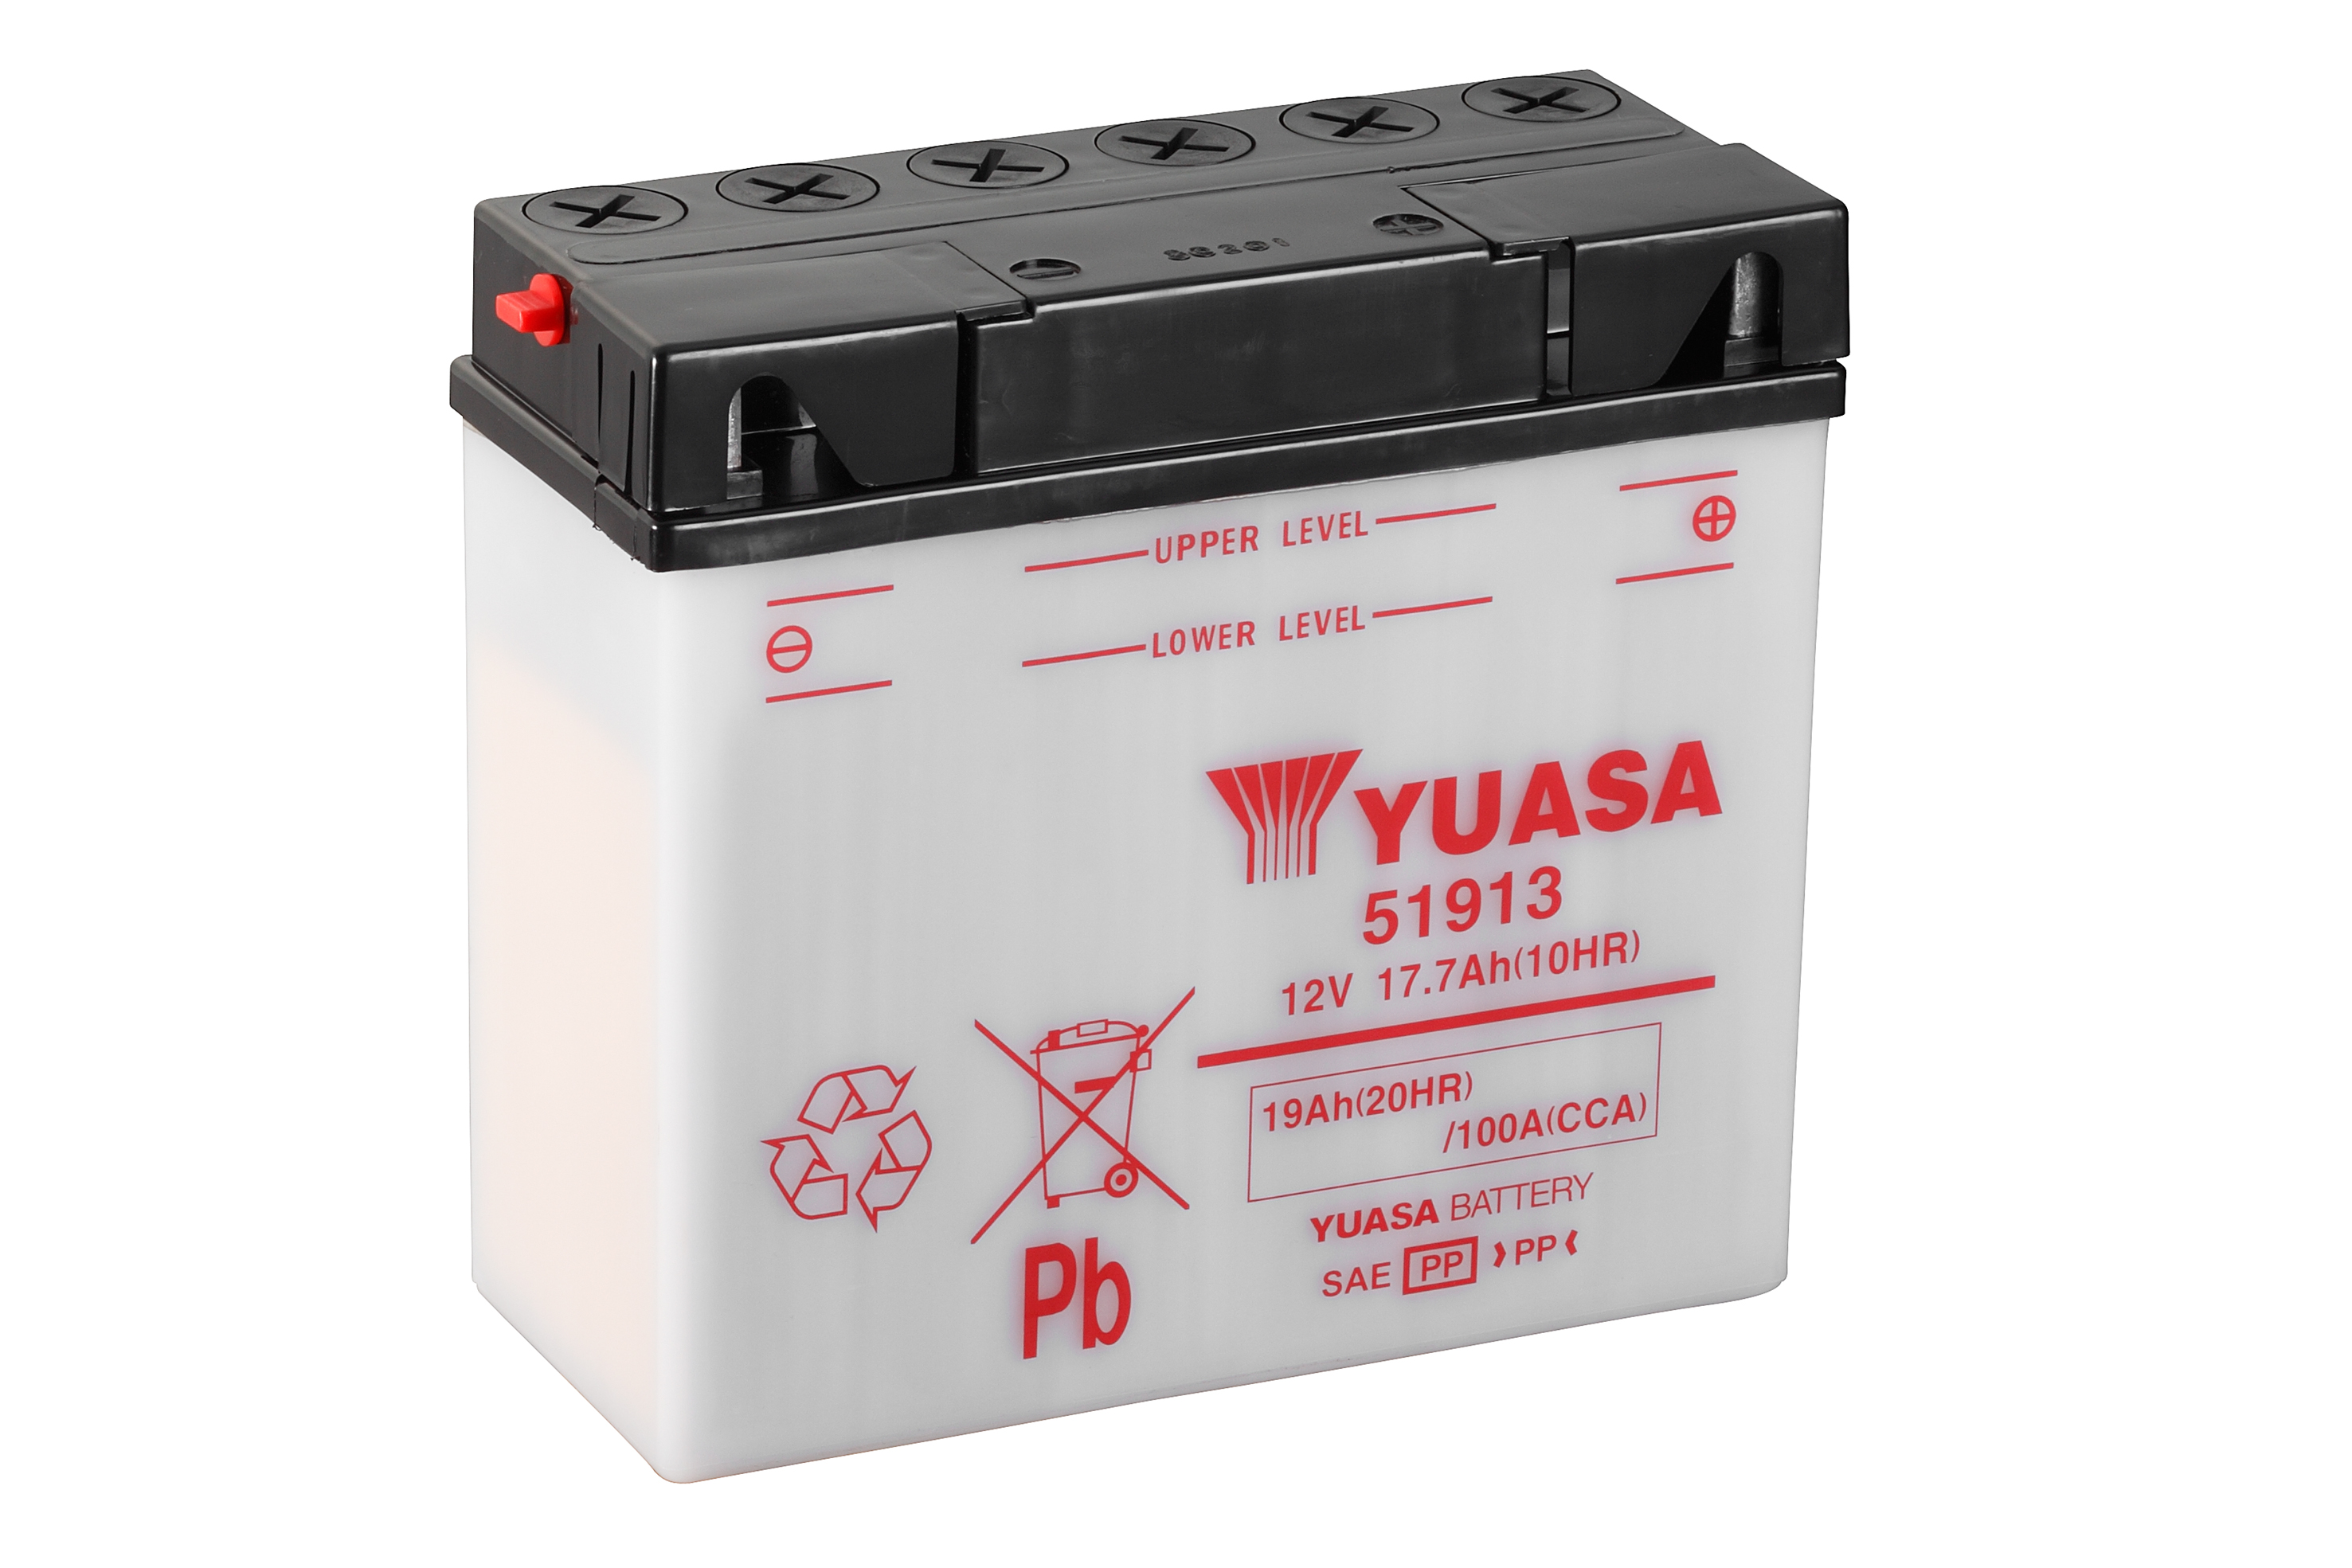 yuasa motorcycle battery 51913 12v 19 20hr from county. Black Bedroom Furniture Sets. Home Design Ideas